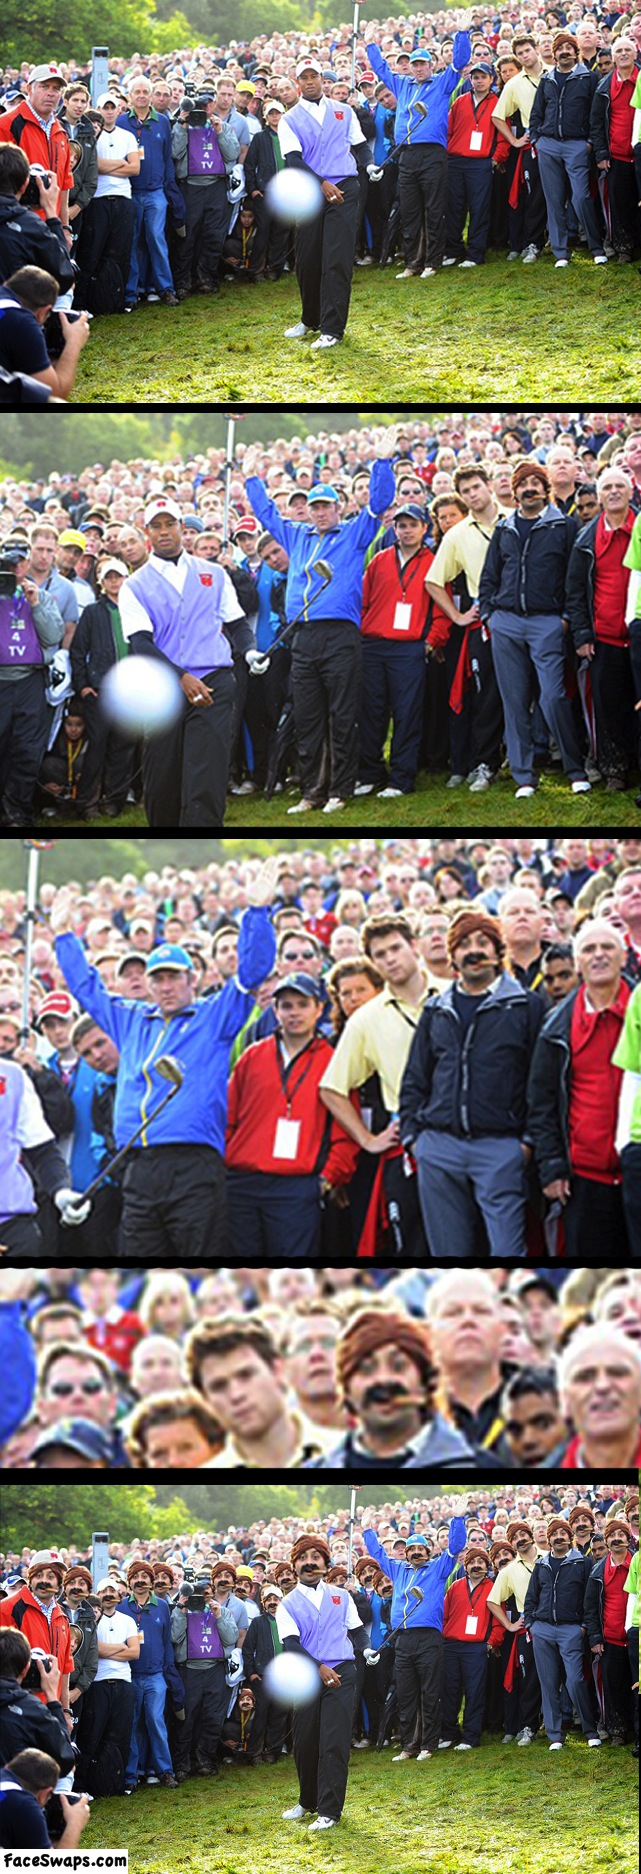 face swap, photoshop, tiger woods, cigar, lol, crowd